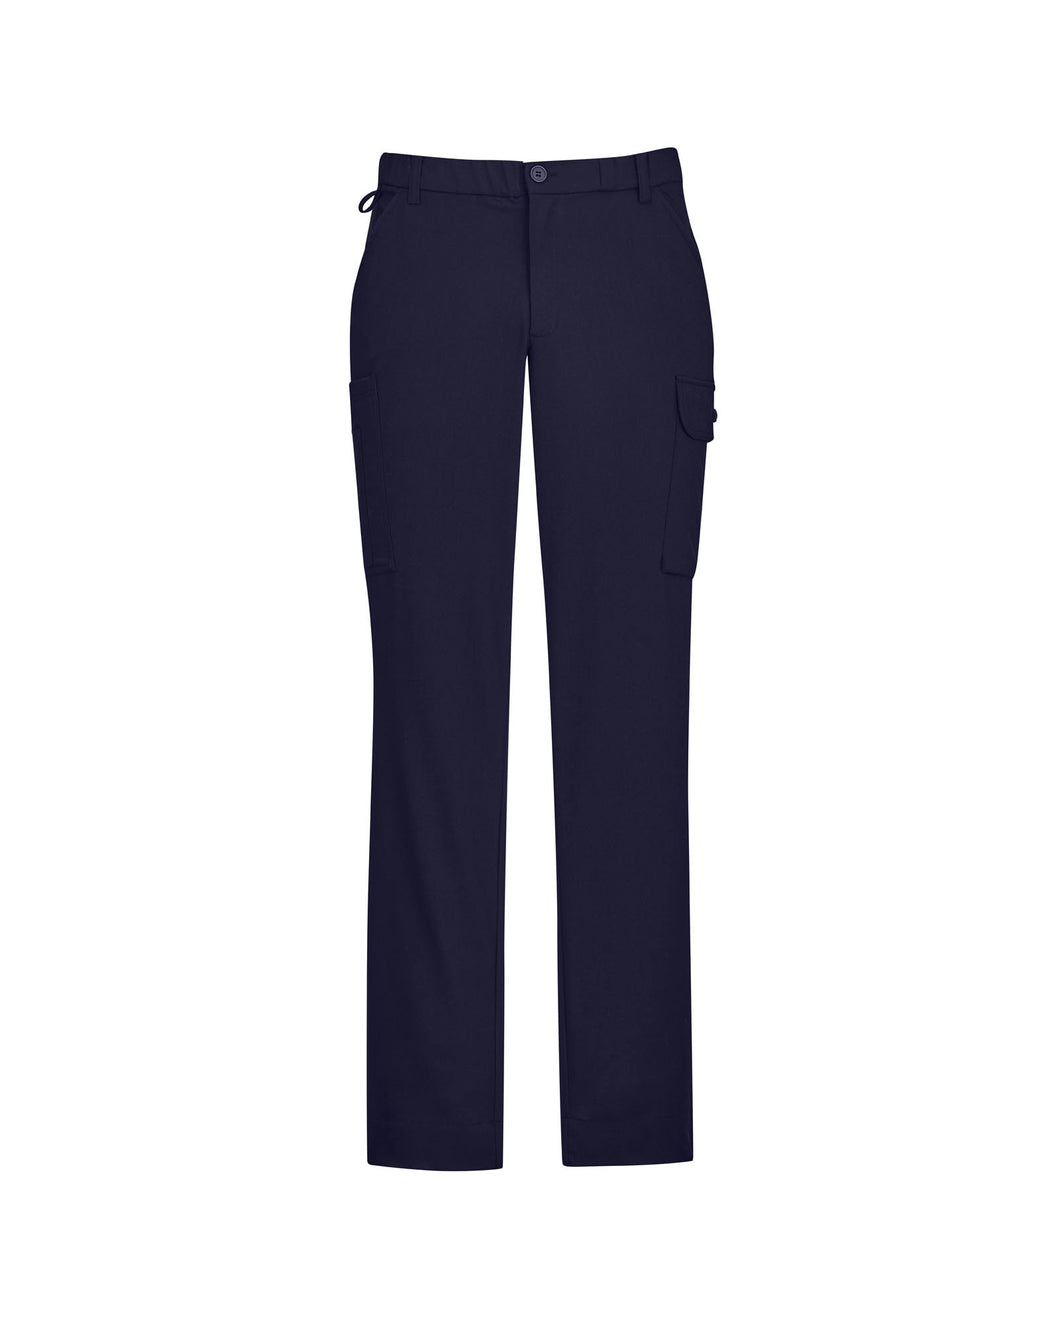 Men's Navy Cargo Pants